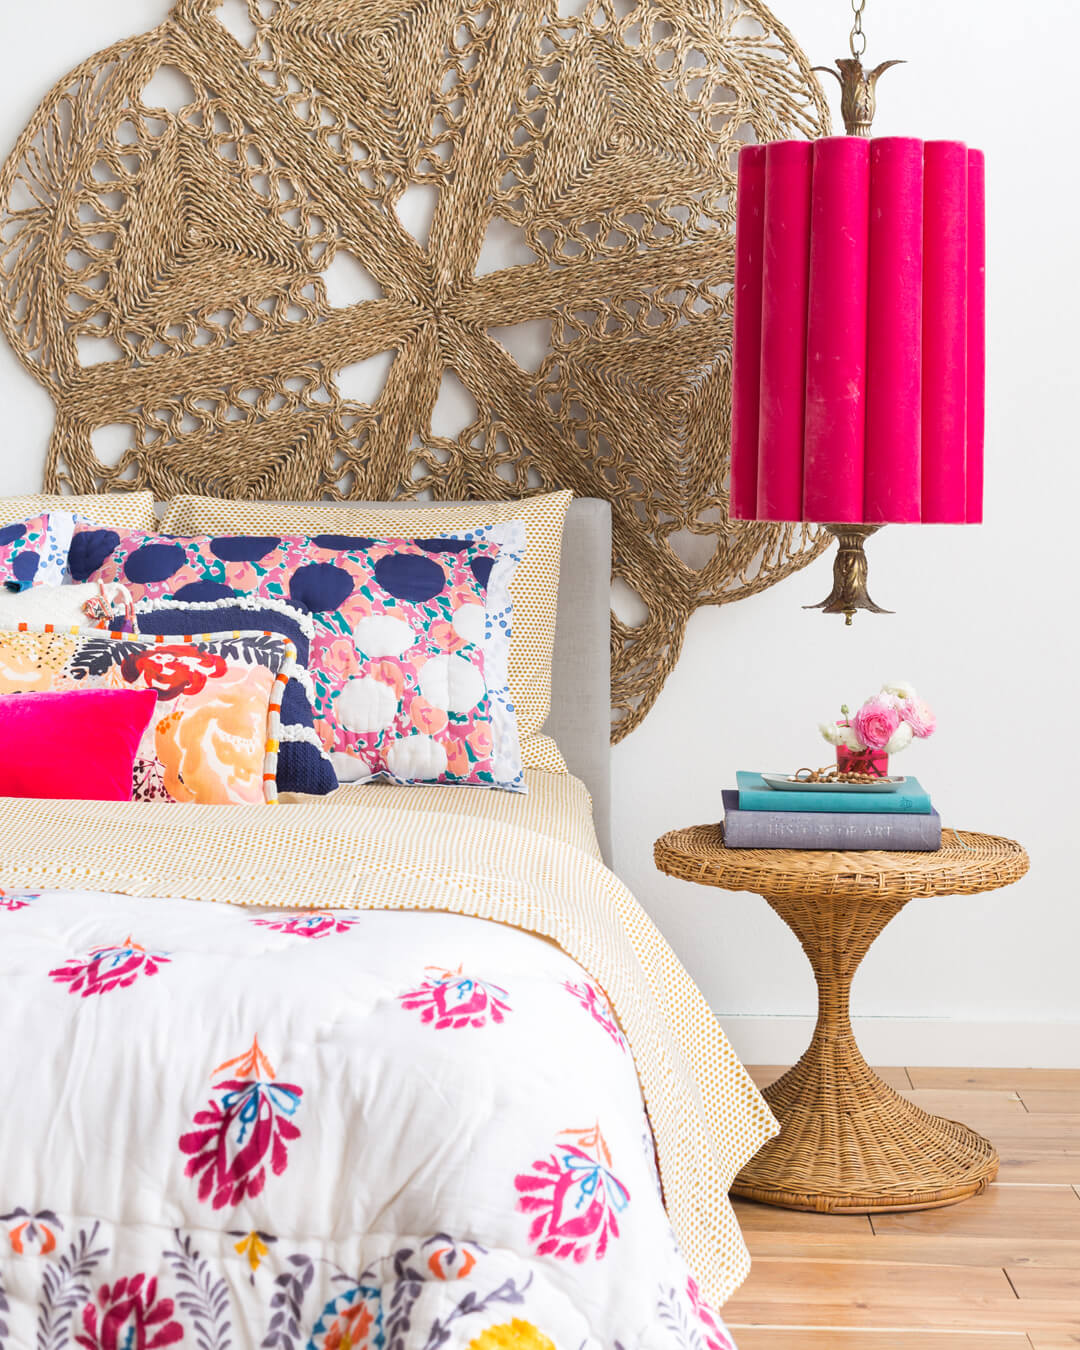 Emily_Henderson_1_Bed_Styling_01